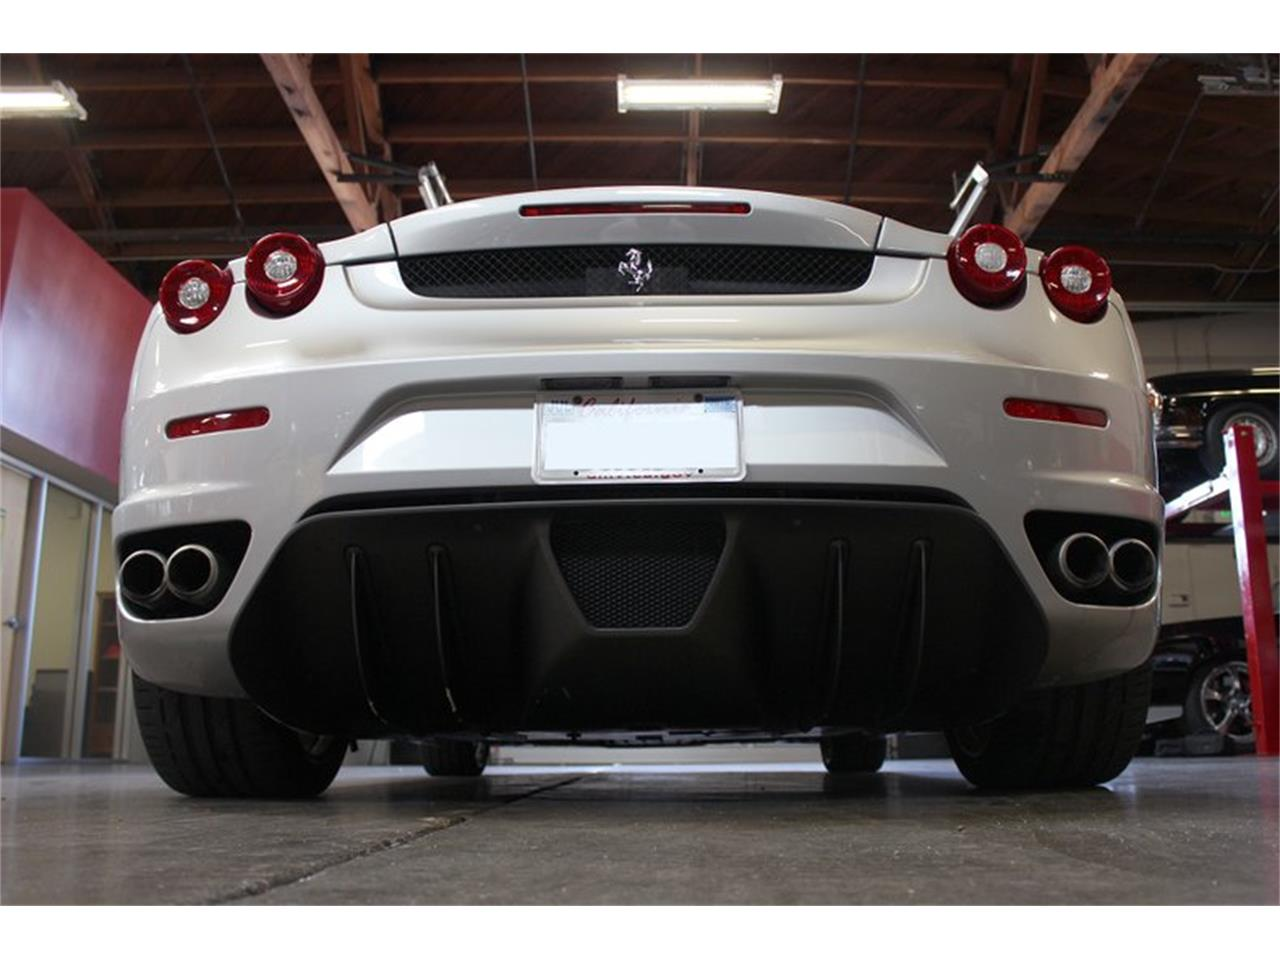 2005 Ferrari F430 for sale in San Carlos, CA – photo 17